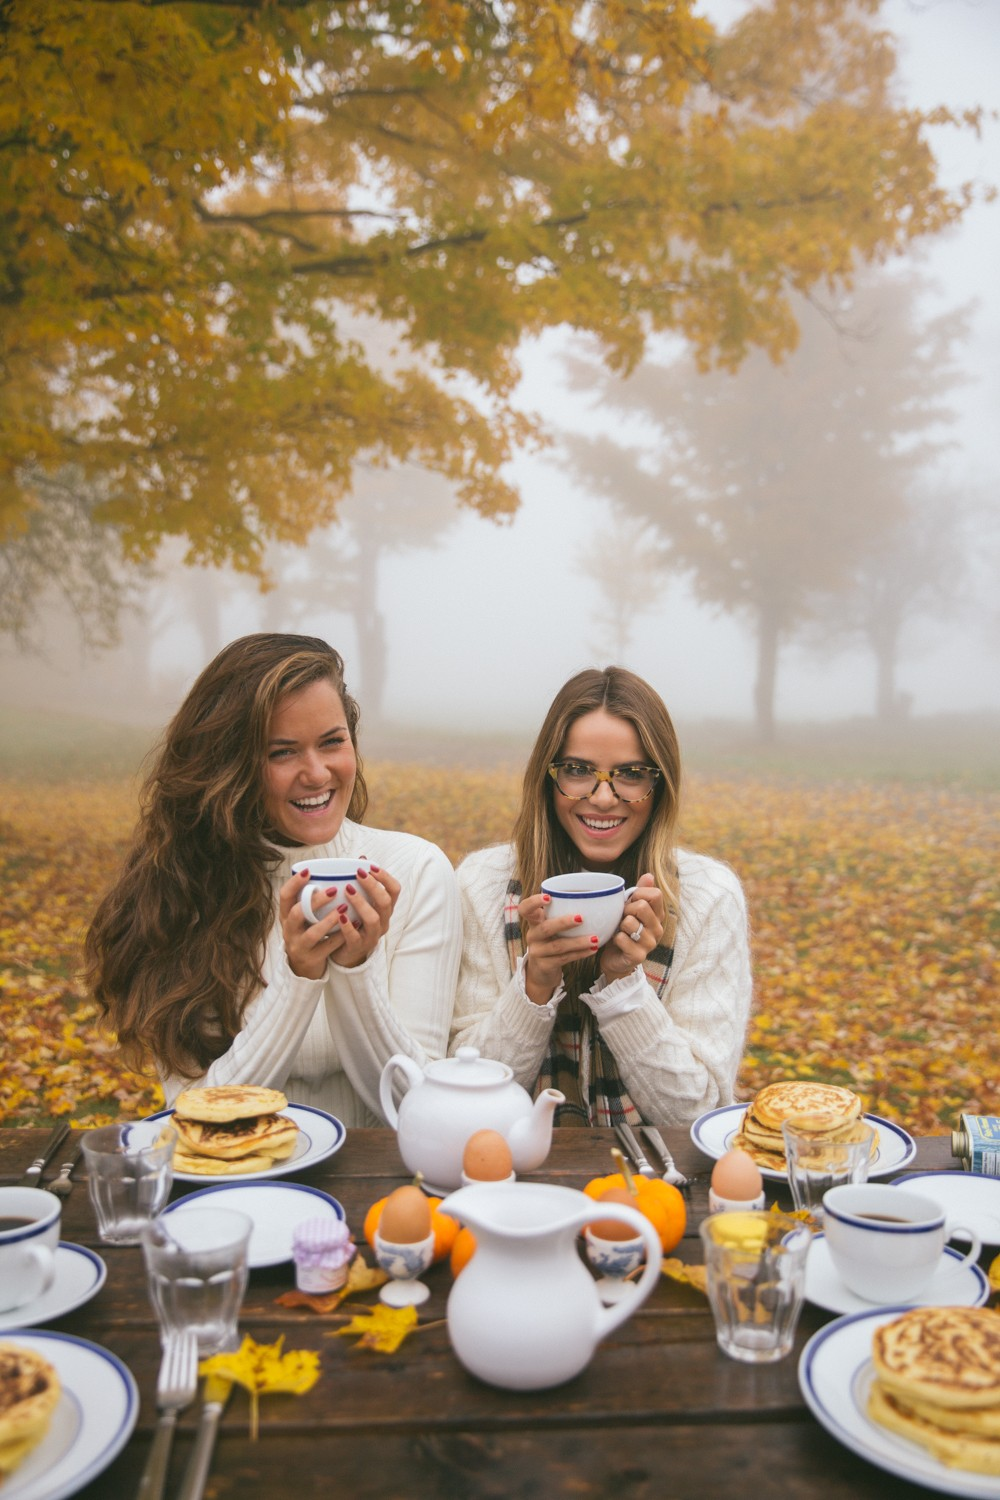 Fall Bucket List : have breakfast with your best friend under the golden trees